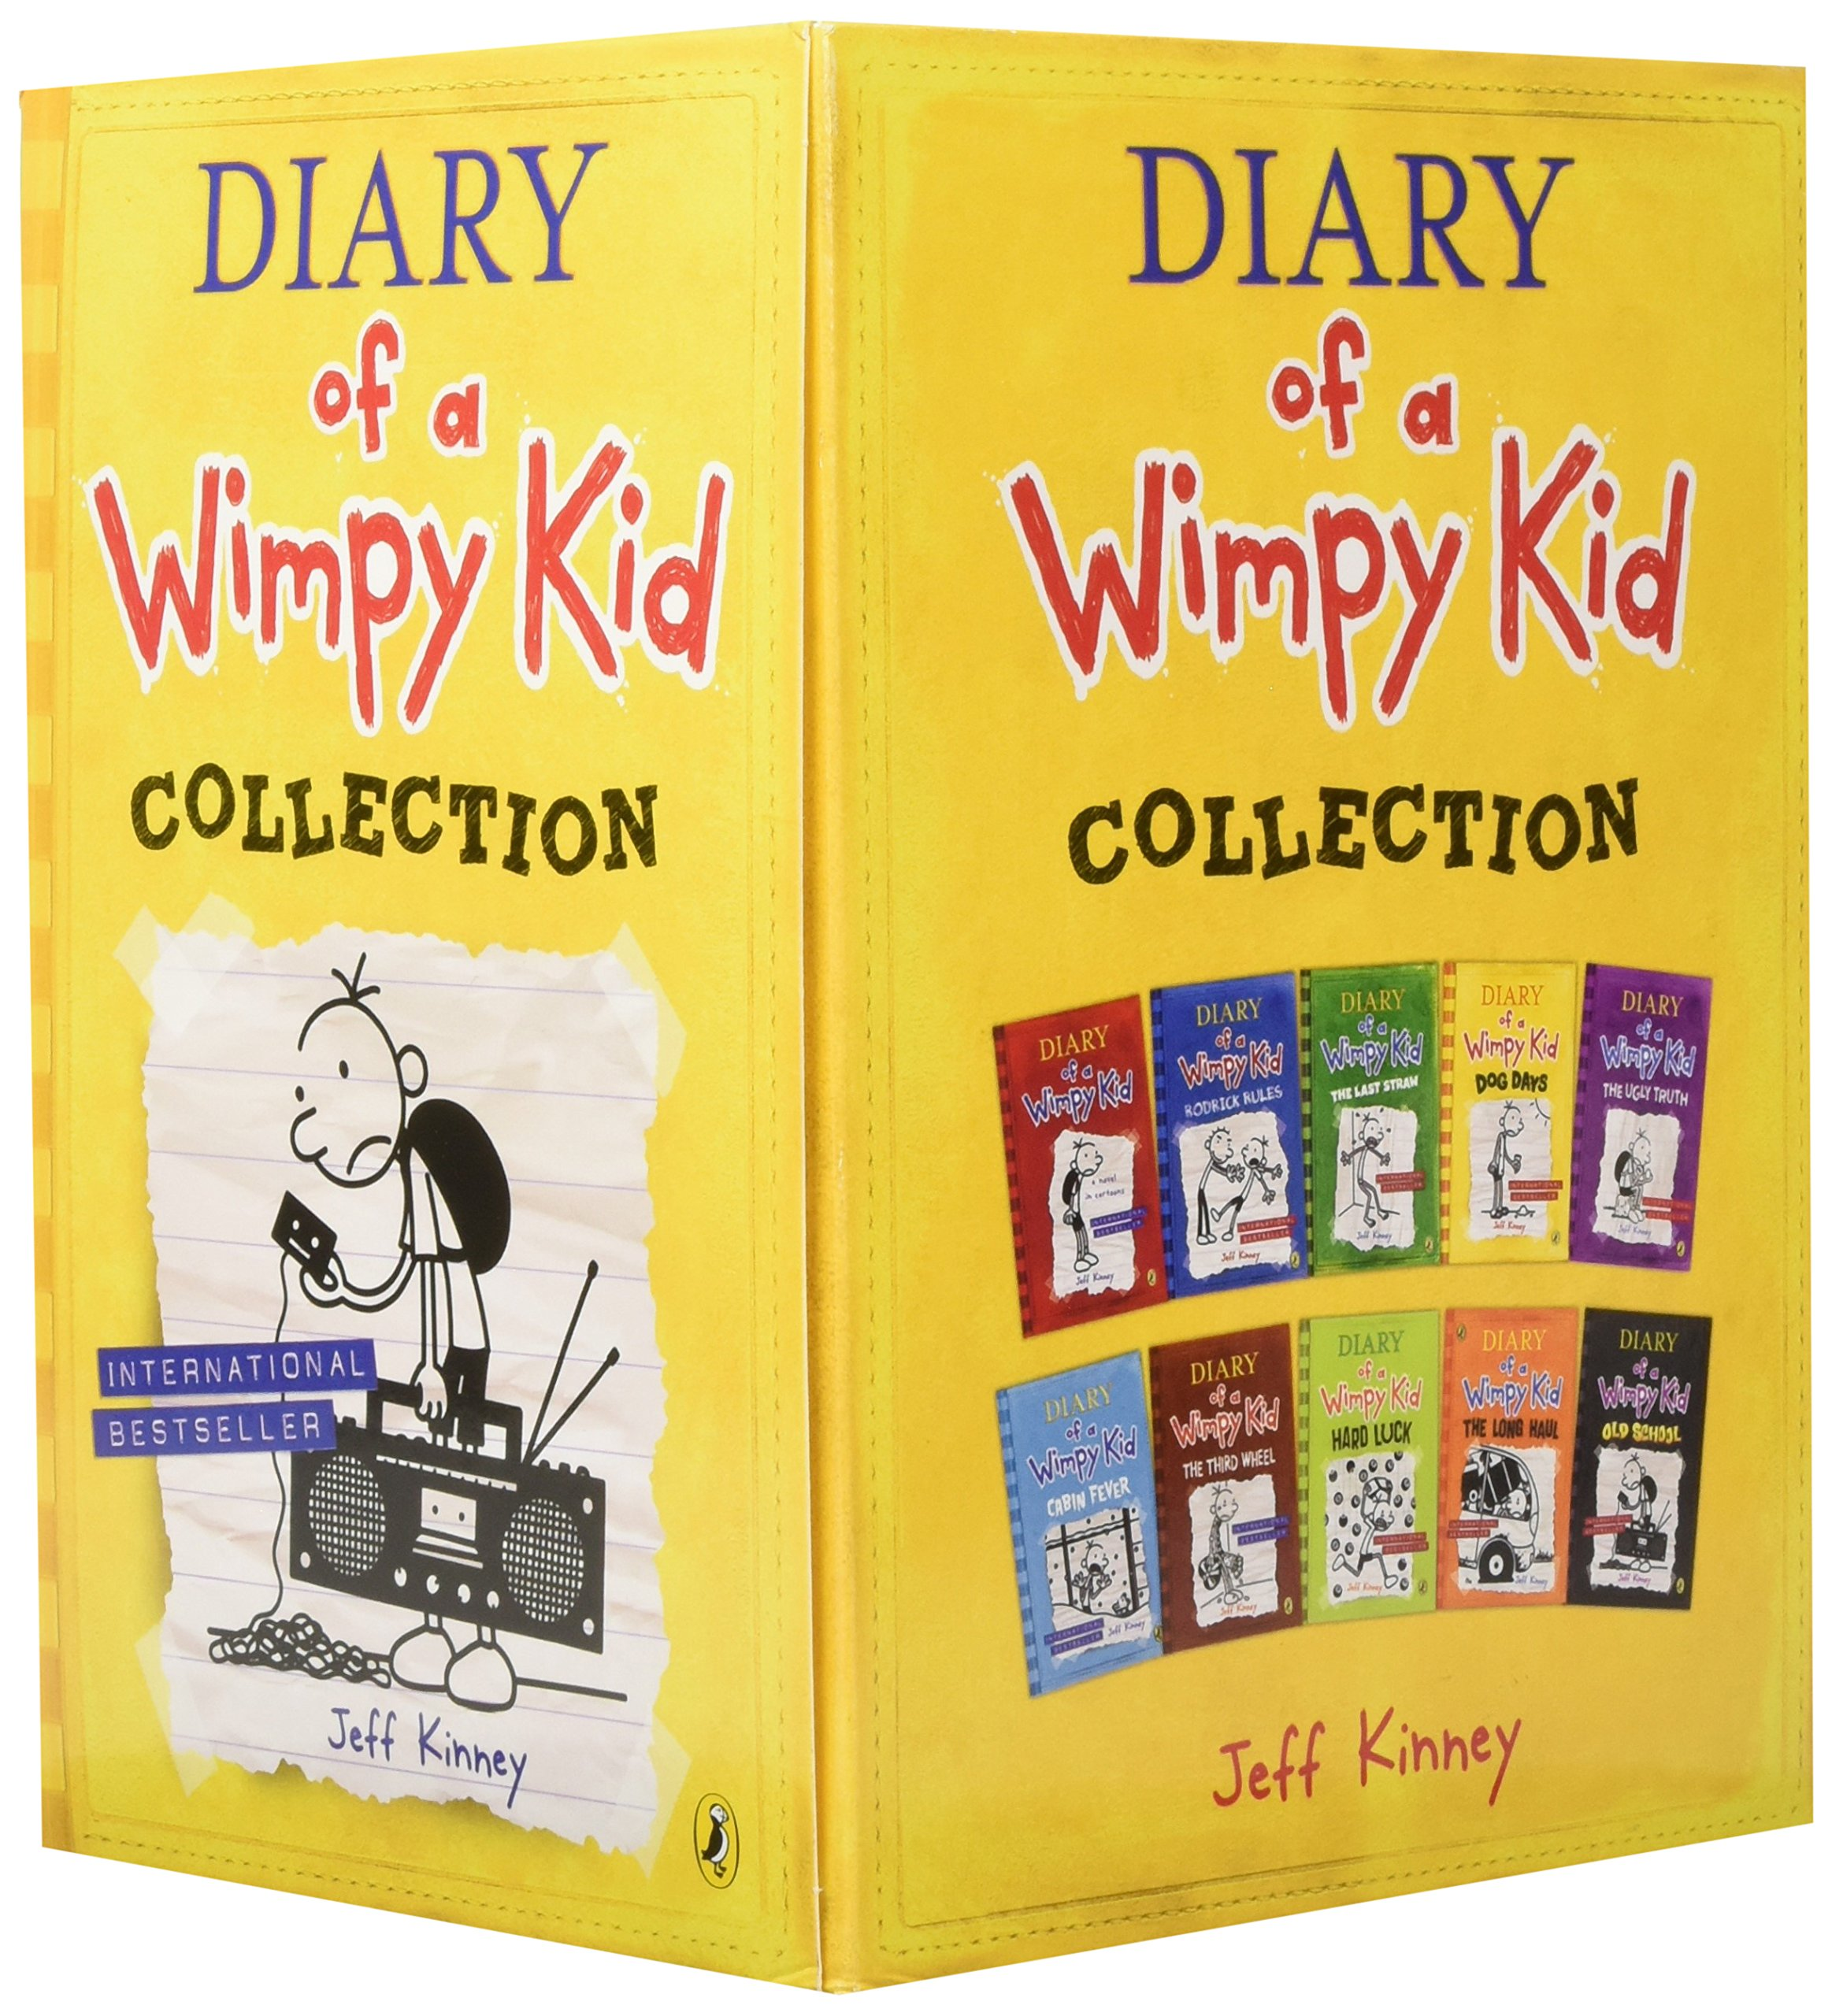 Diary of a Wimpy Kid Collection (Set of 10) by Puffin (Image #2)